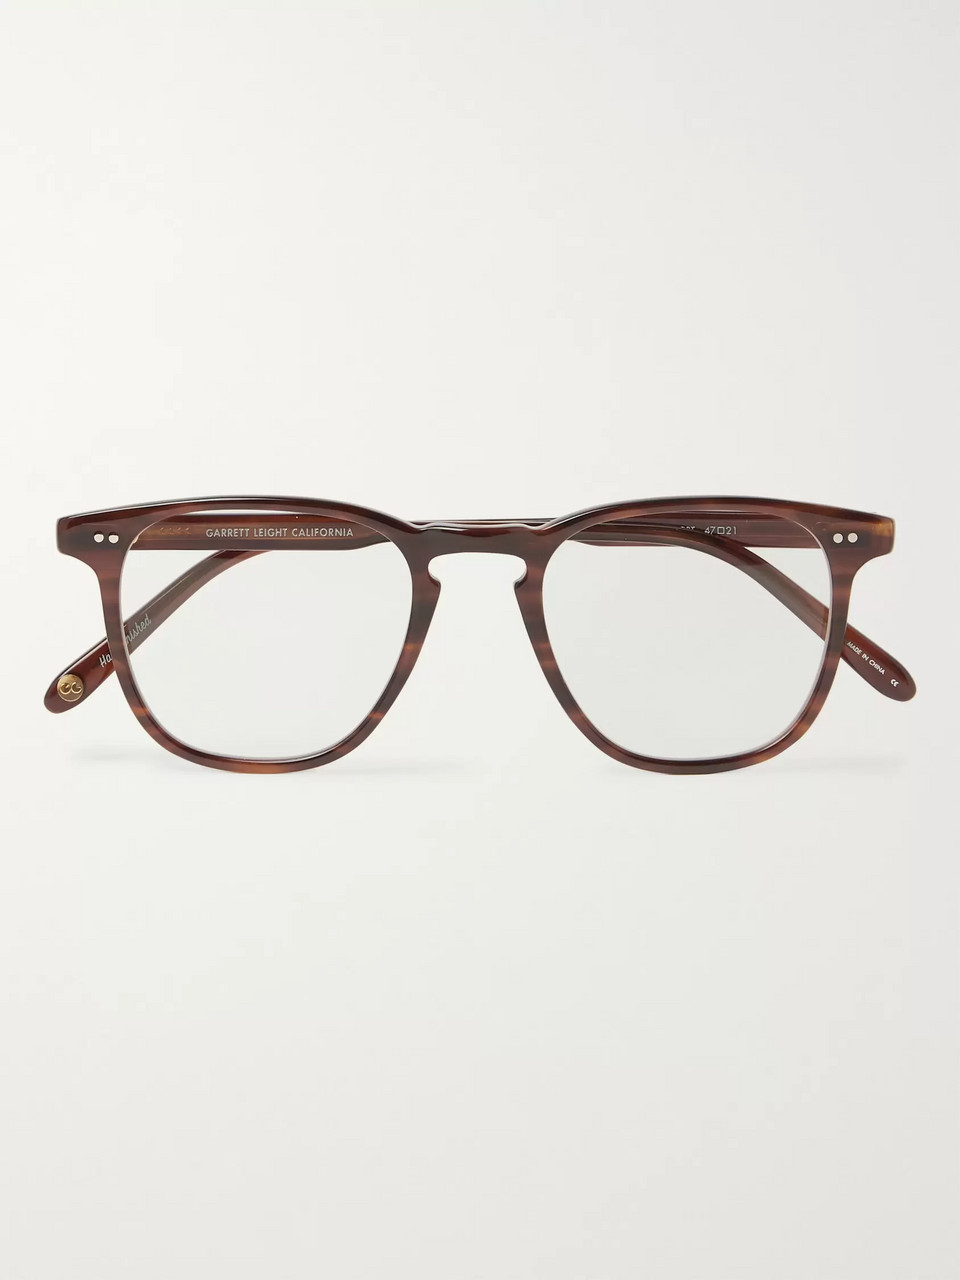 494c3b1c1ec Garrett Leight California Optical Brooks 47 D-Frame Acetate Optical Glasses